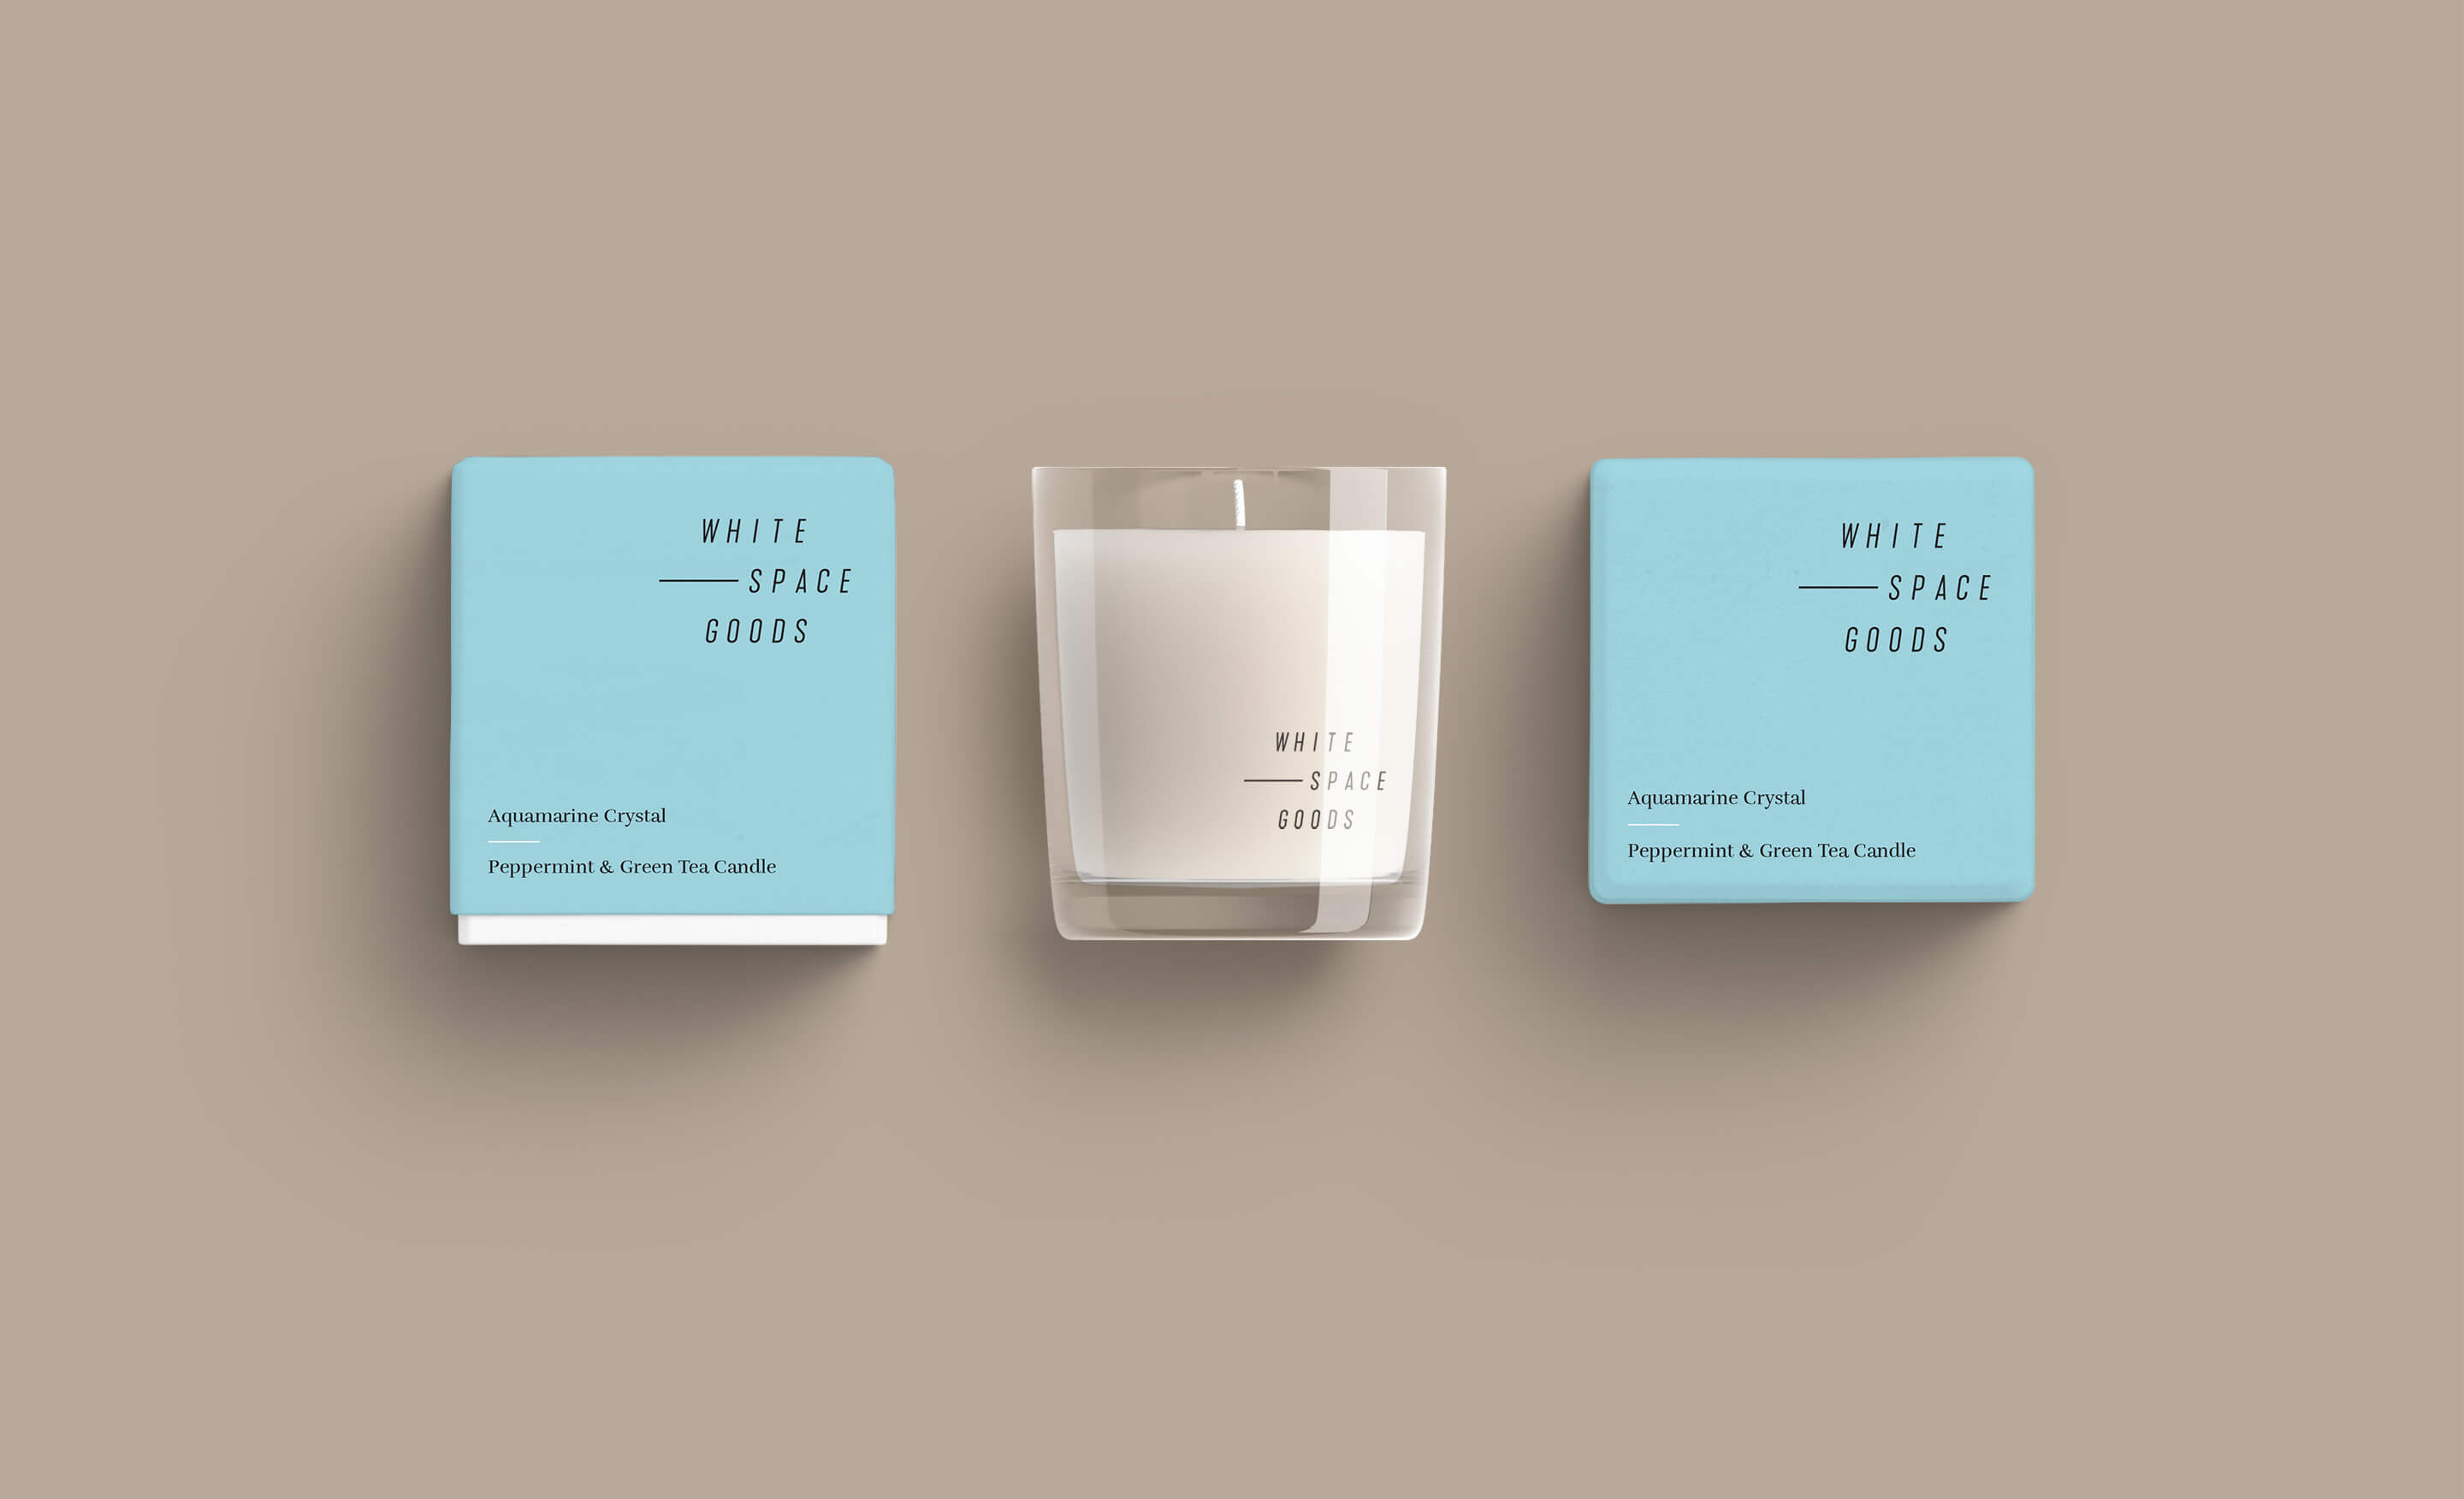 Whitespace Goods Logo design and branding for handmade knitwear and decor store